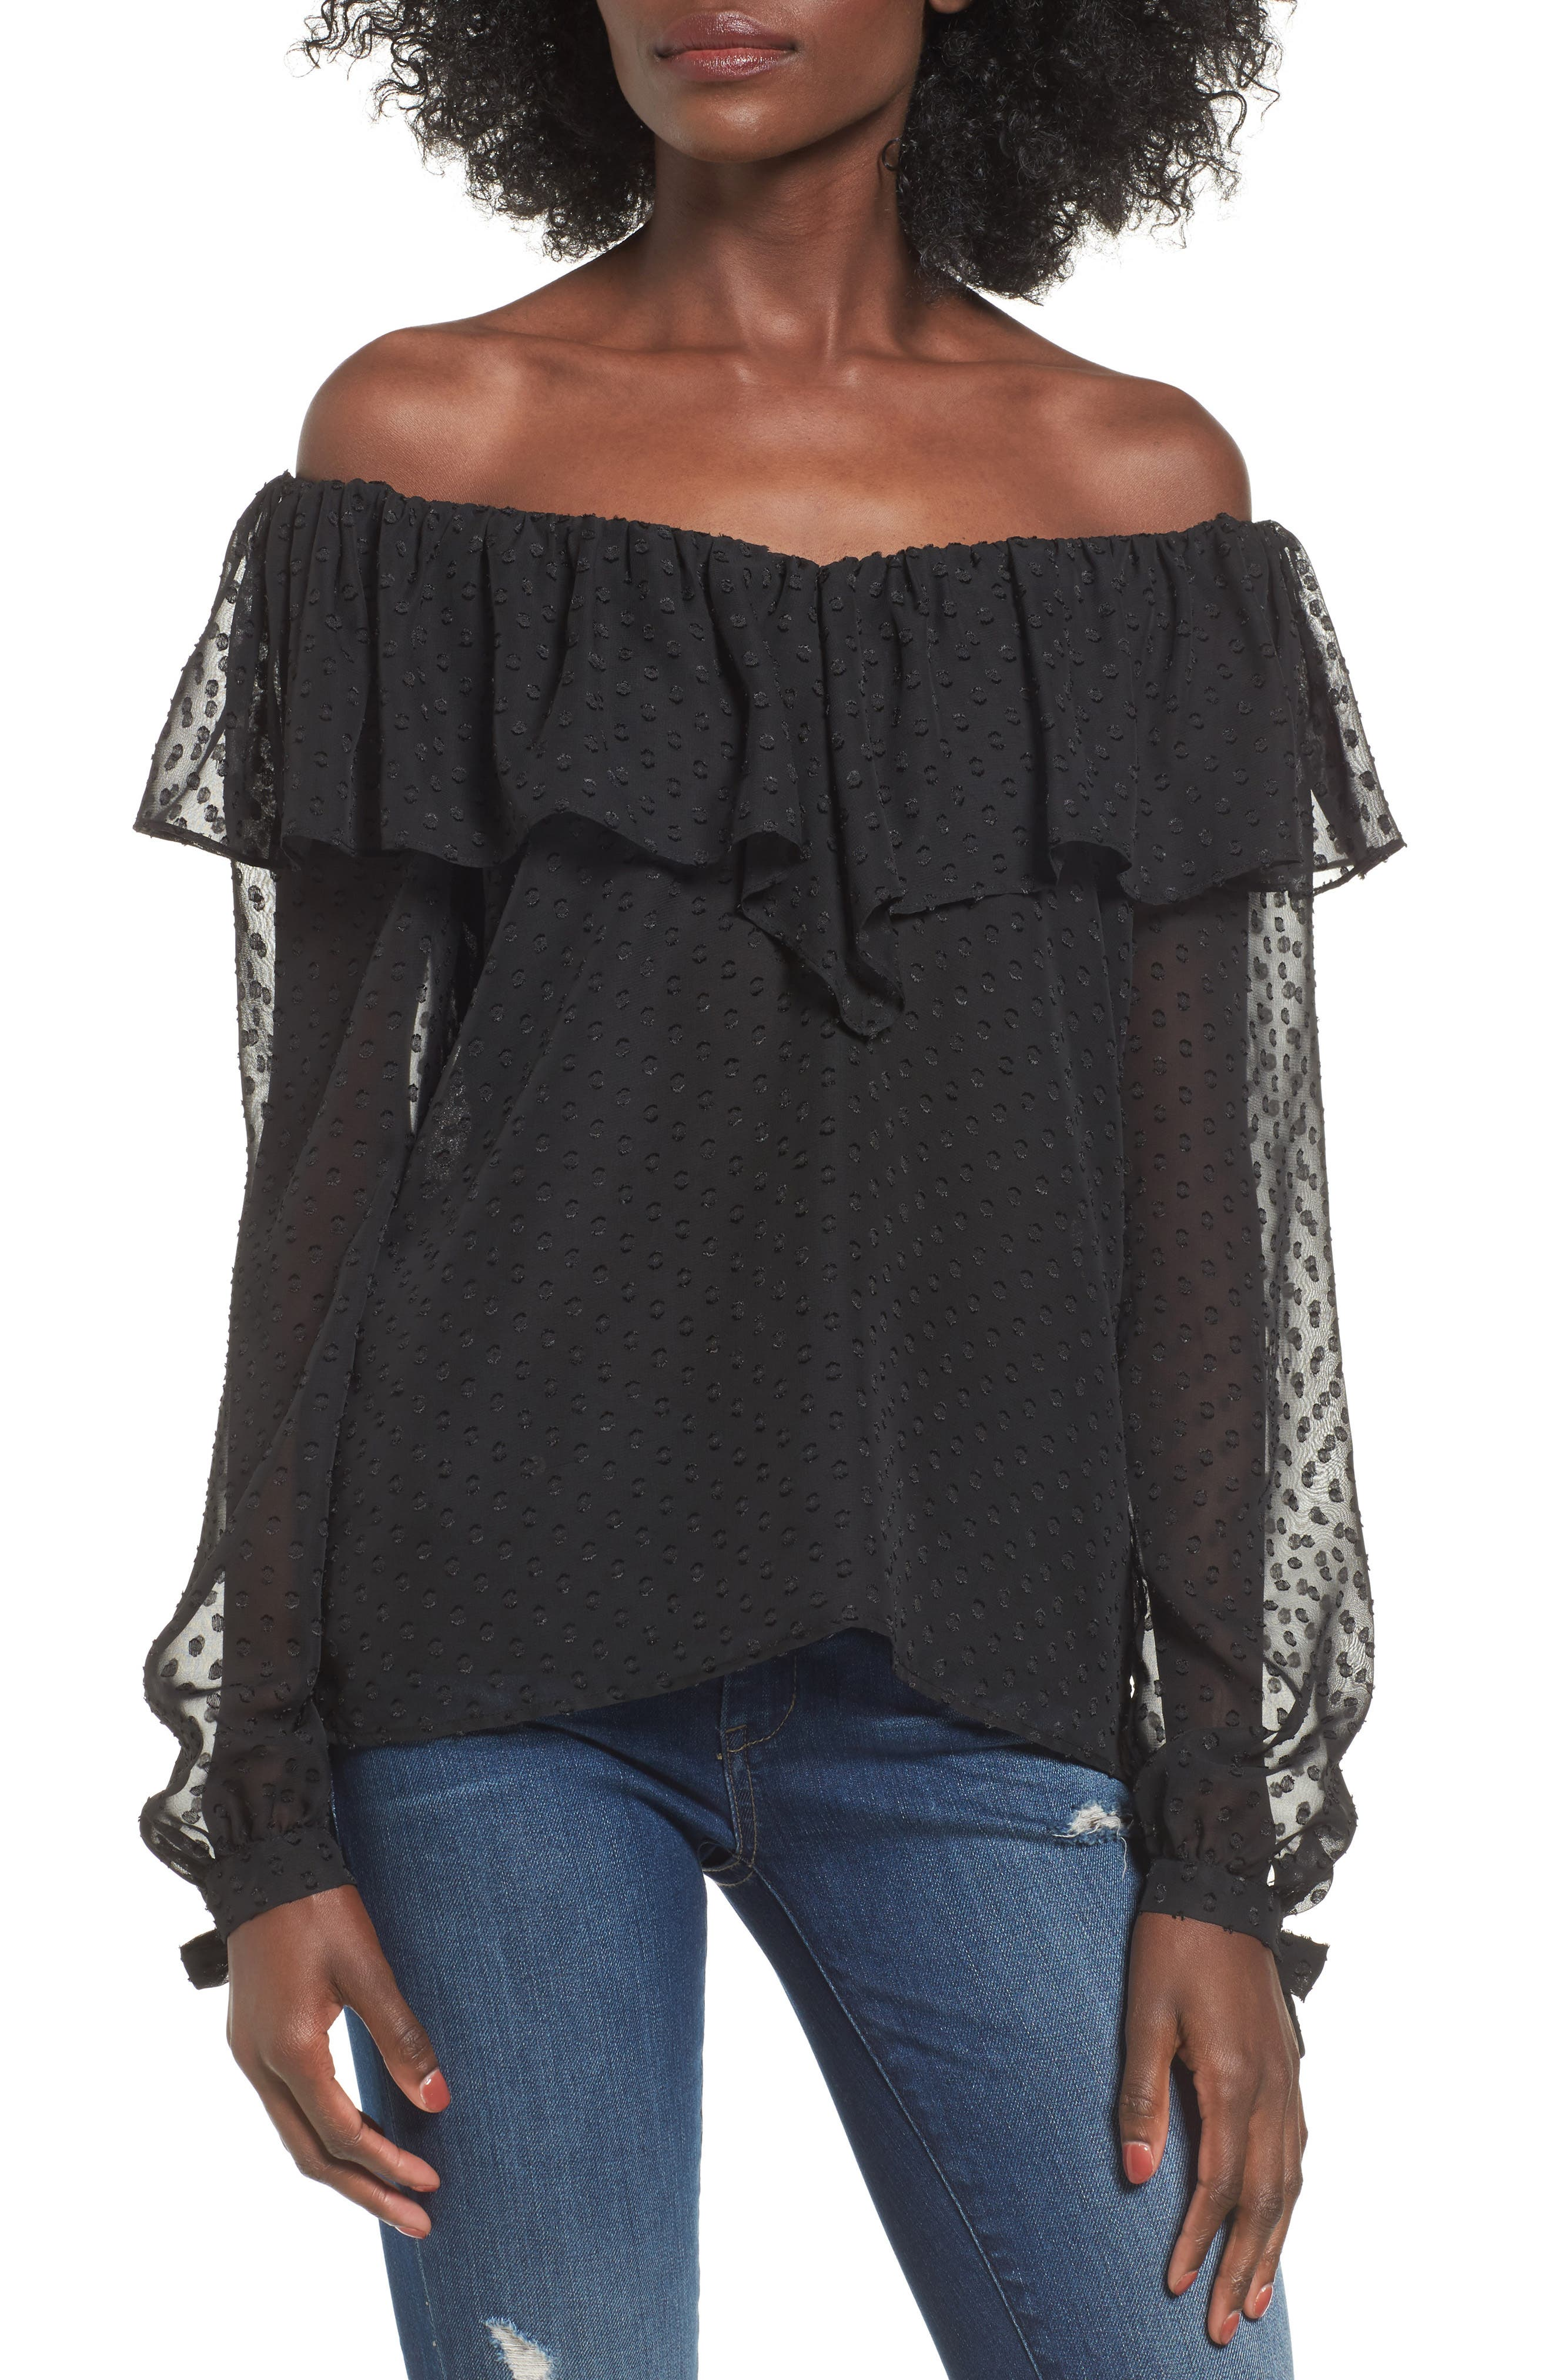 Kiere Ruffle Off the Shoulder Top,                         Main,                         color, 001